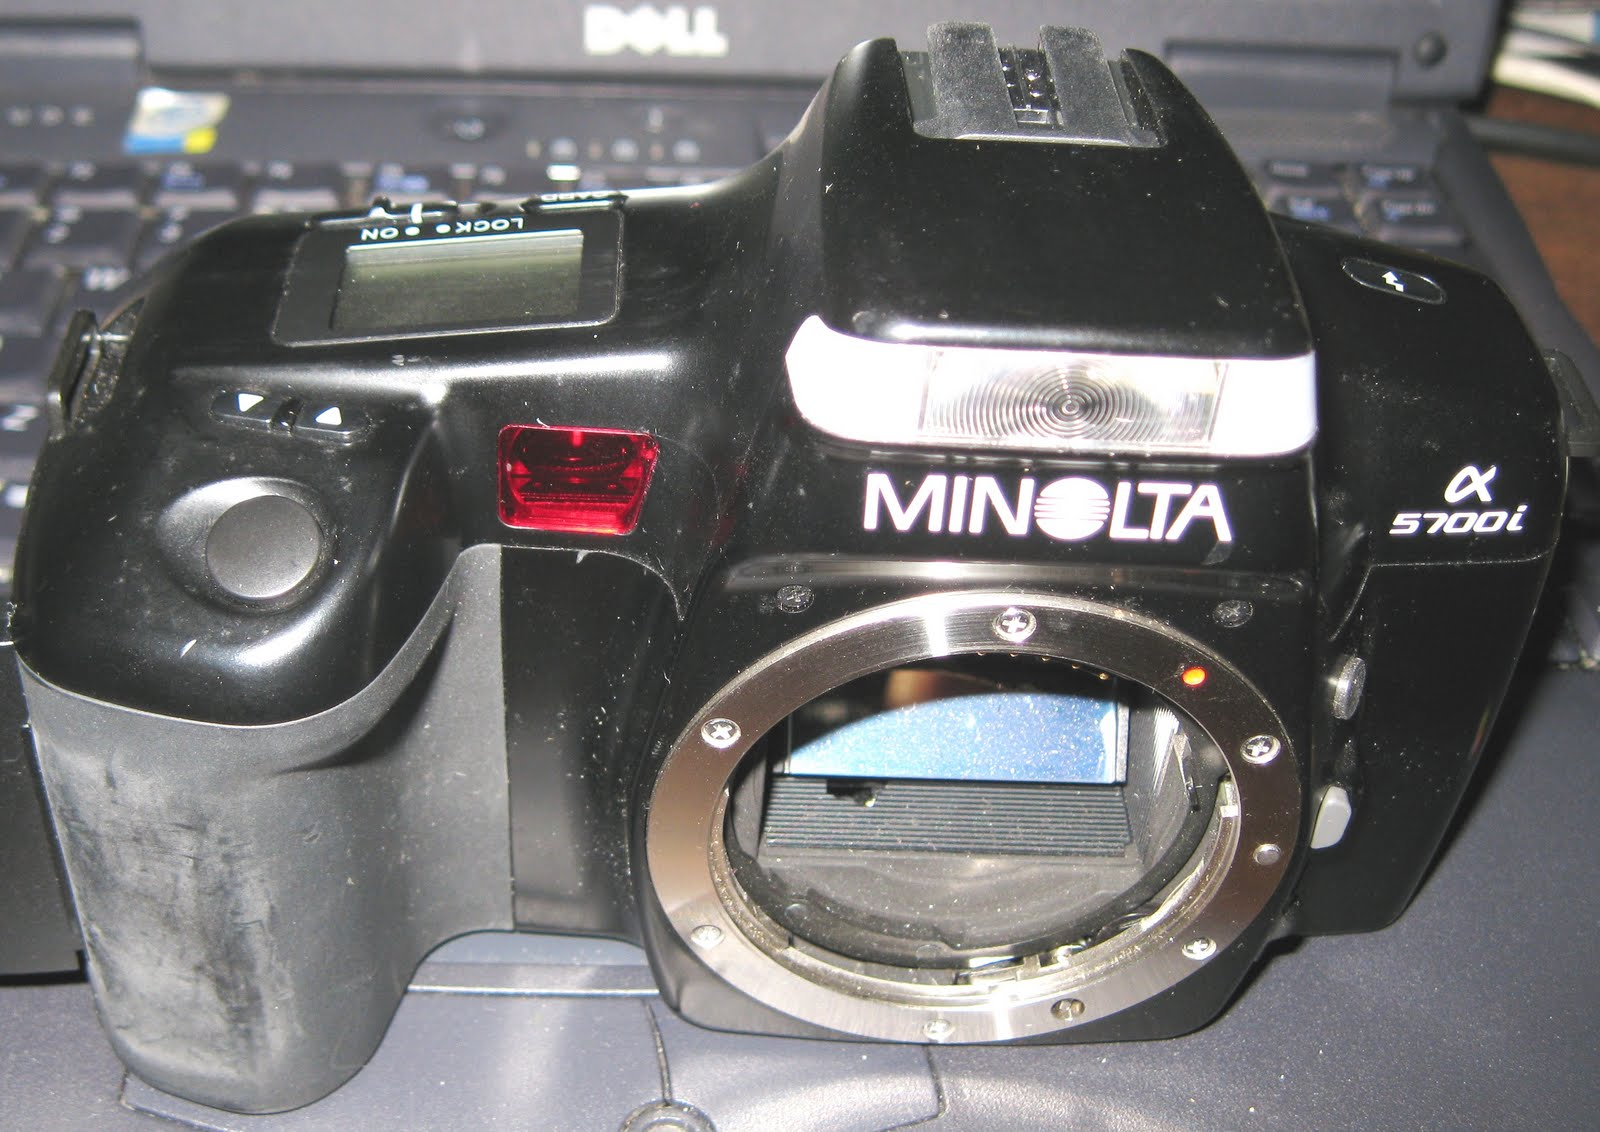 Minolta maxxum 5000i 35mm slr film camera w/ minolta body cap.